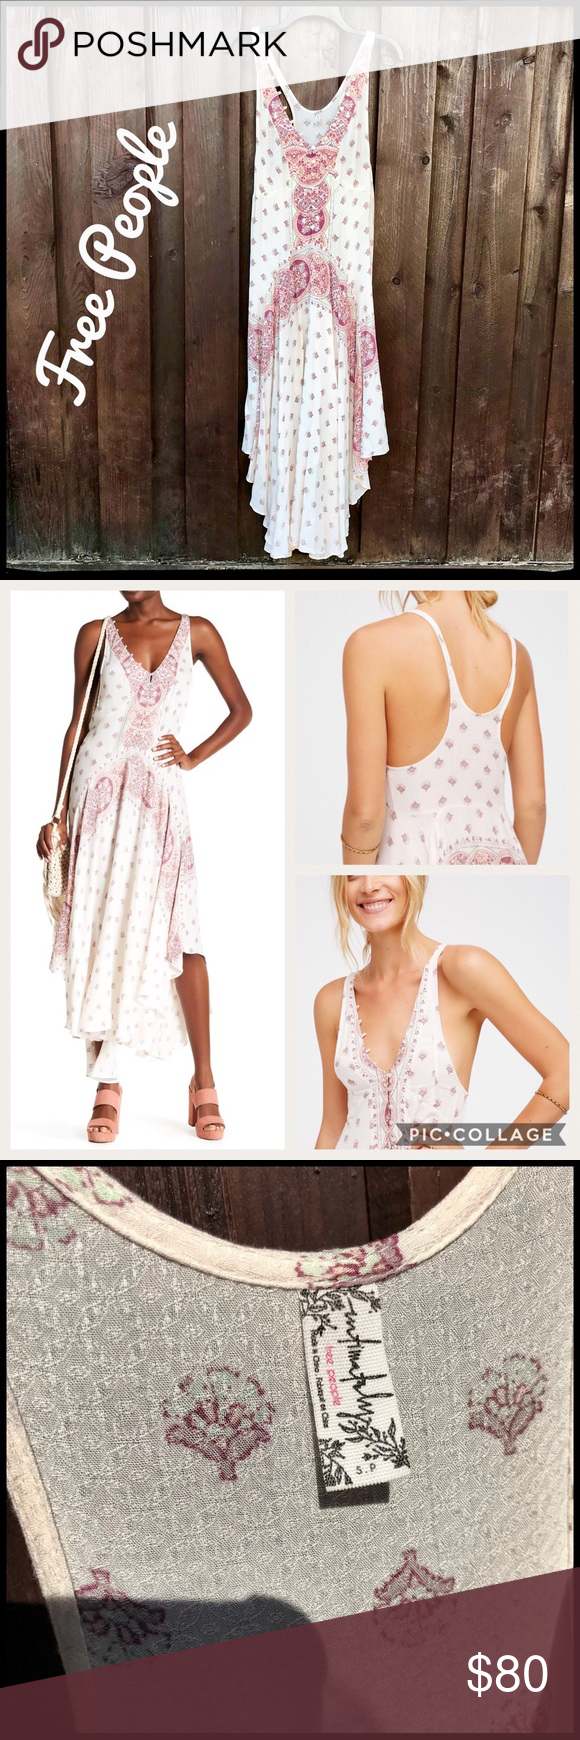 c71563626f3dc Free People Intimately Faithfully Yours Slip Dress Boho-Chick Free People  Faithfully Yours Slip Dress—Size Small—sleeveless, drop waist, flowing midi  ...